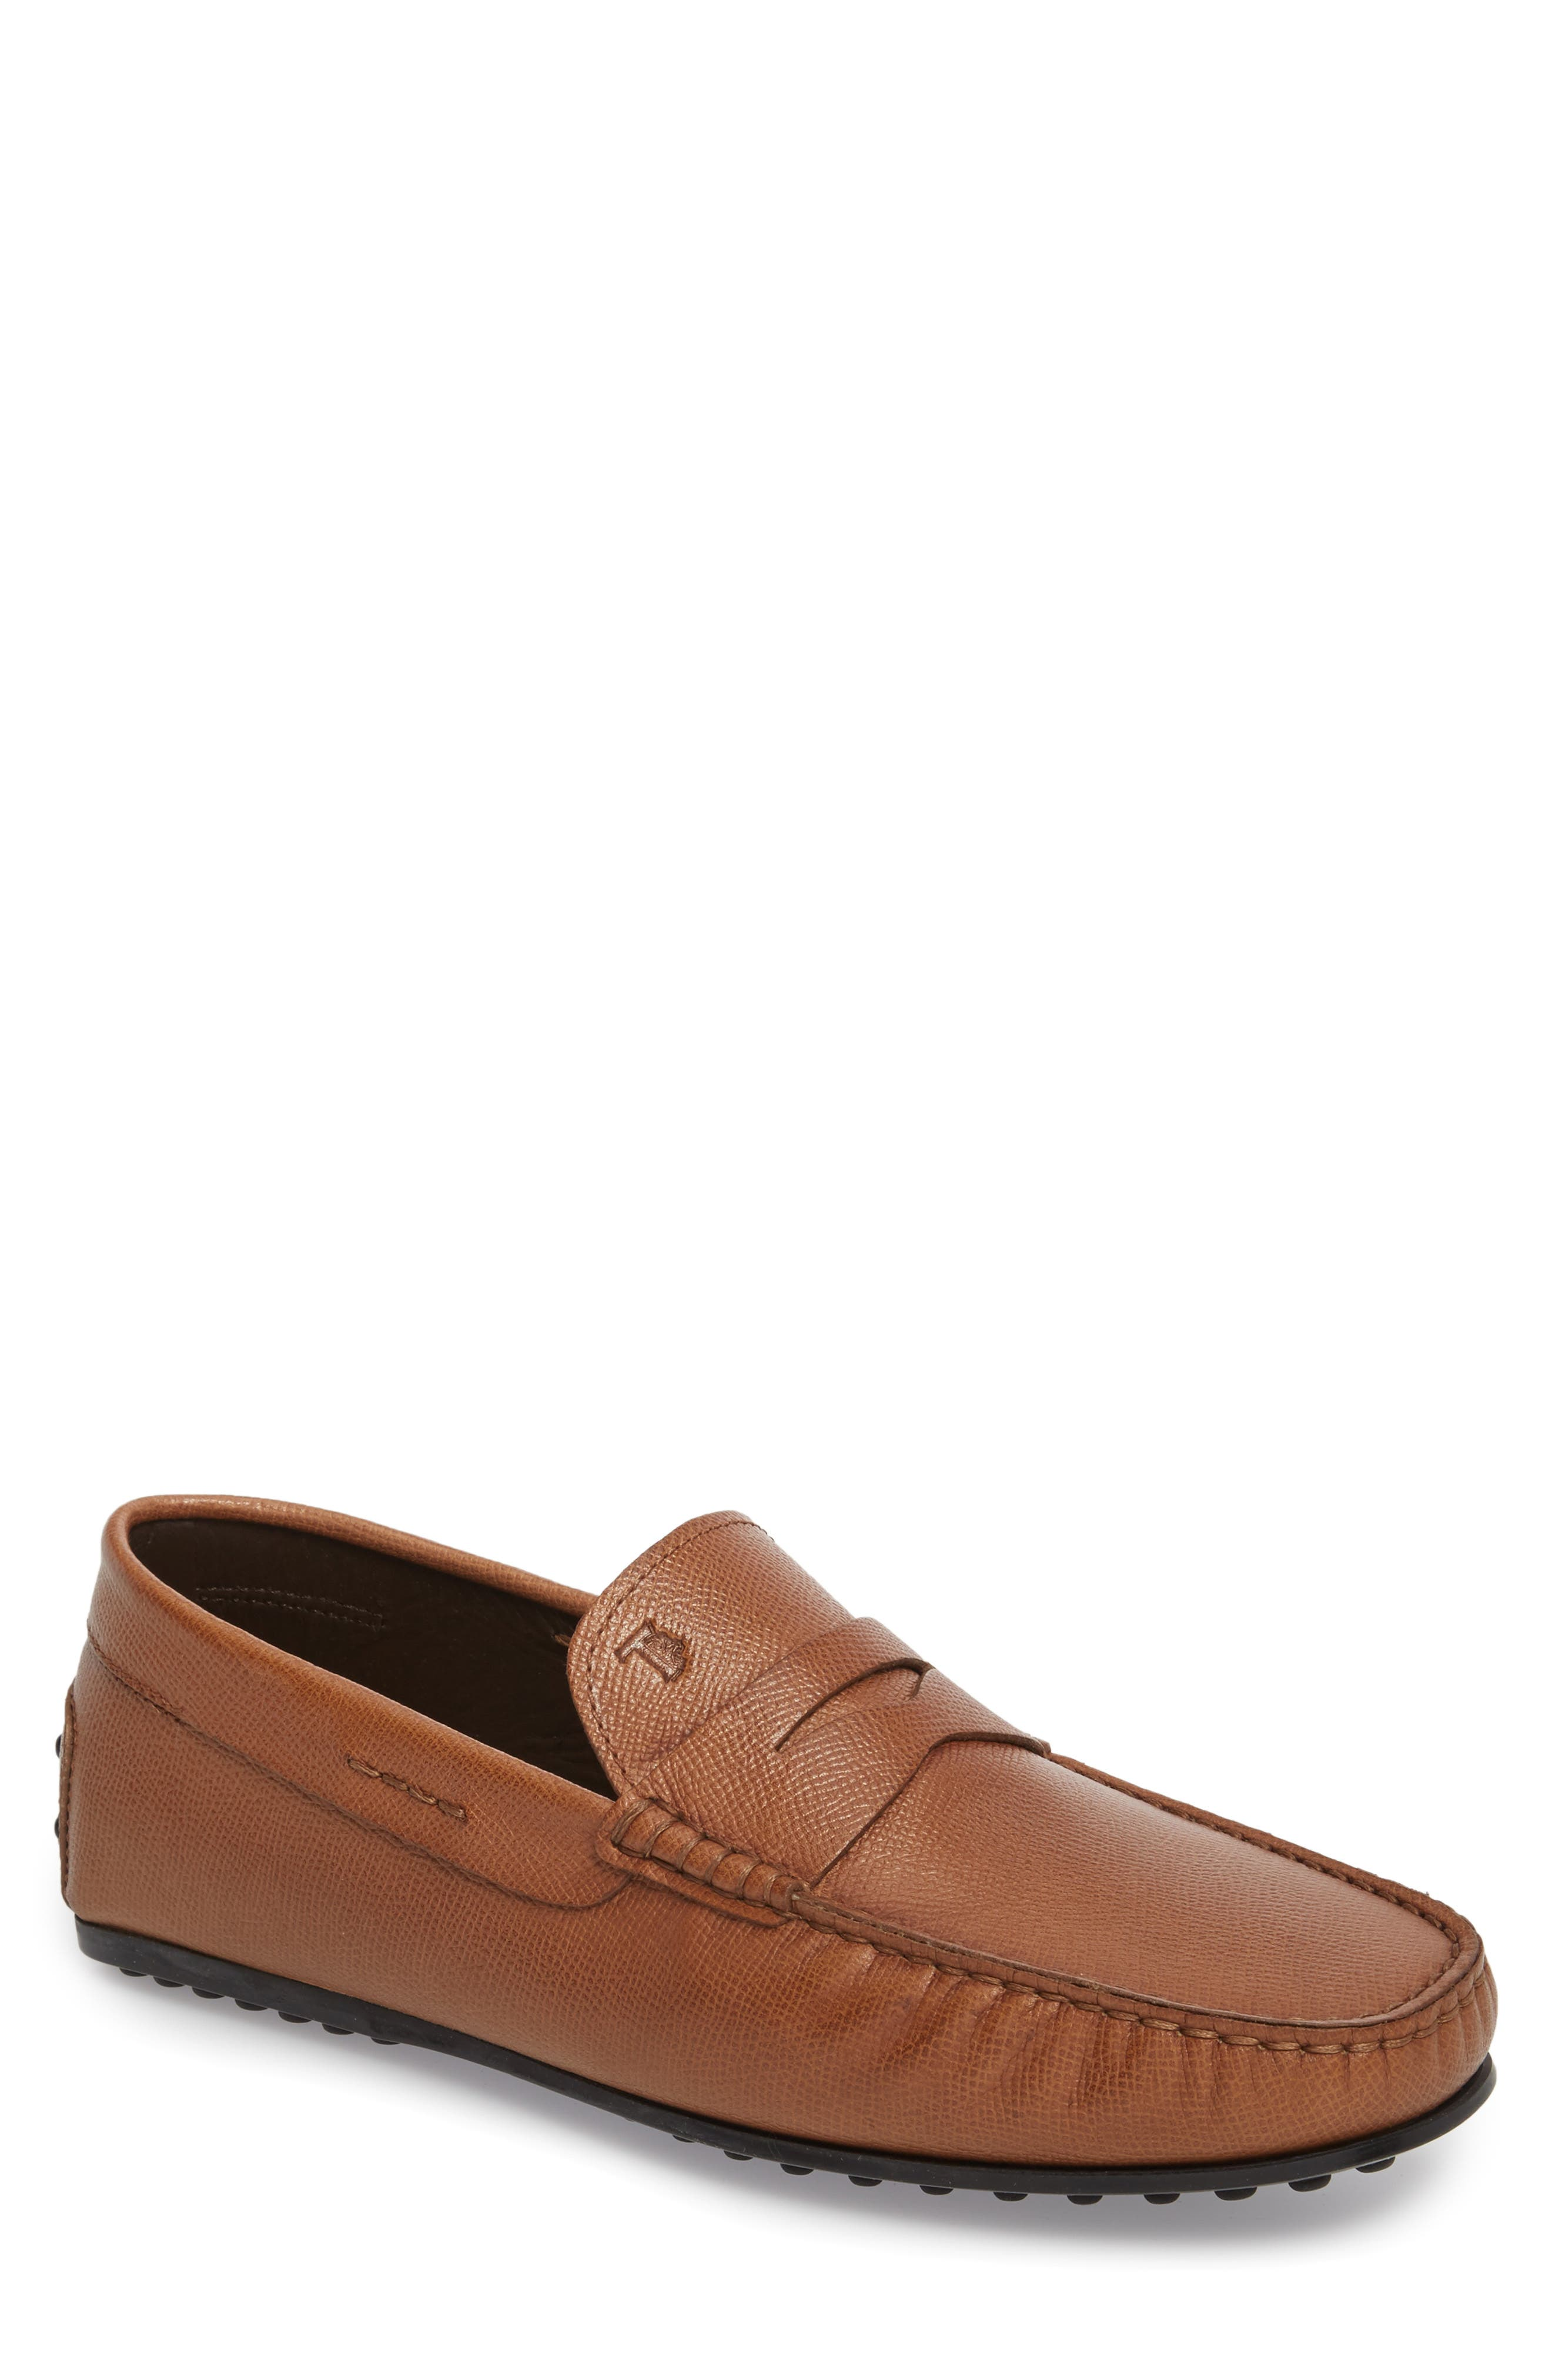 Alternate Image 1 Selected - Tod's City Driving Shoe (Men)